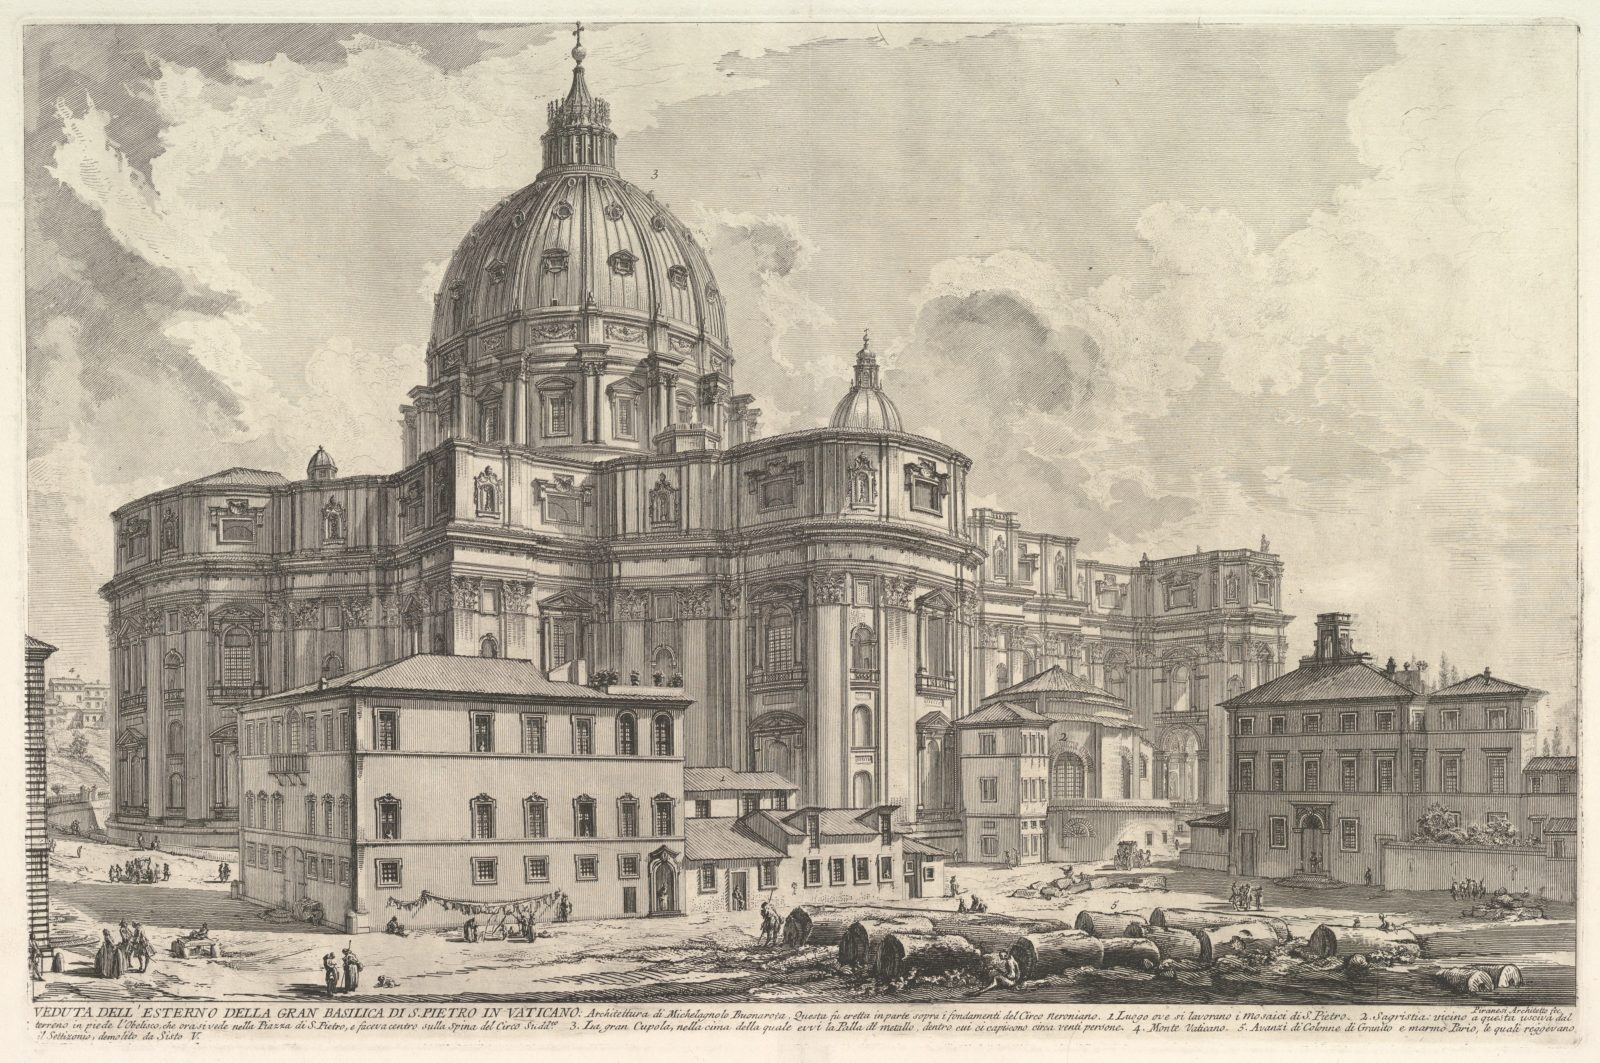 View of the exterior of St. Peter's Basilica in the Vatican, from Vedute di Roma (Roman Views)